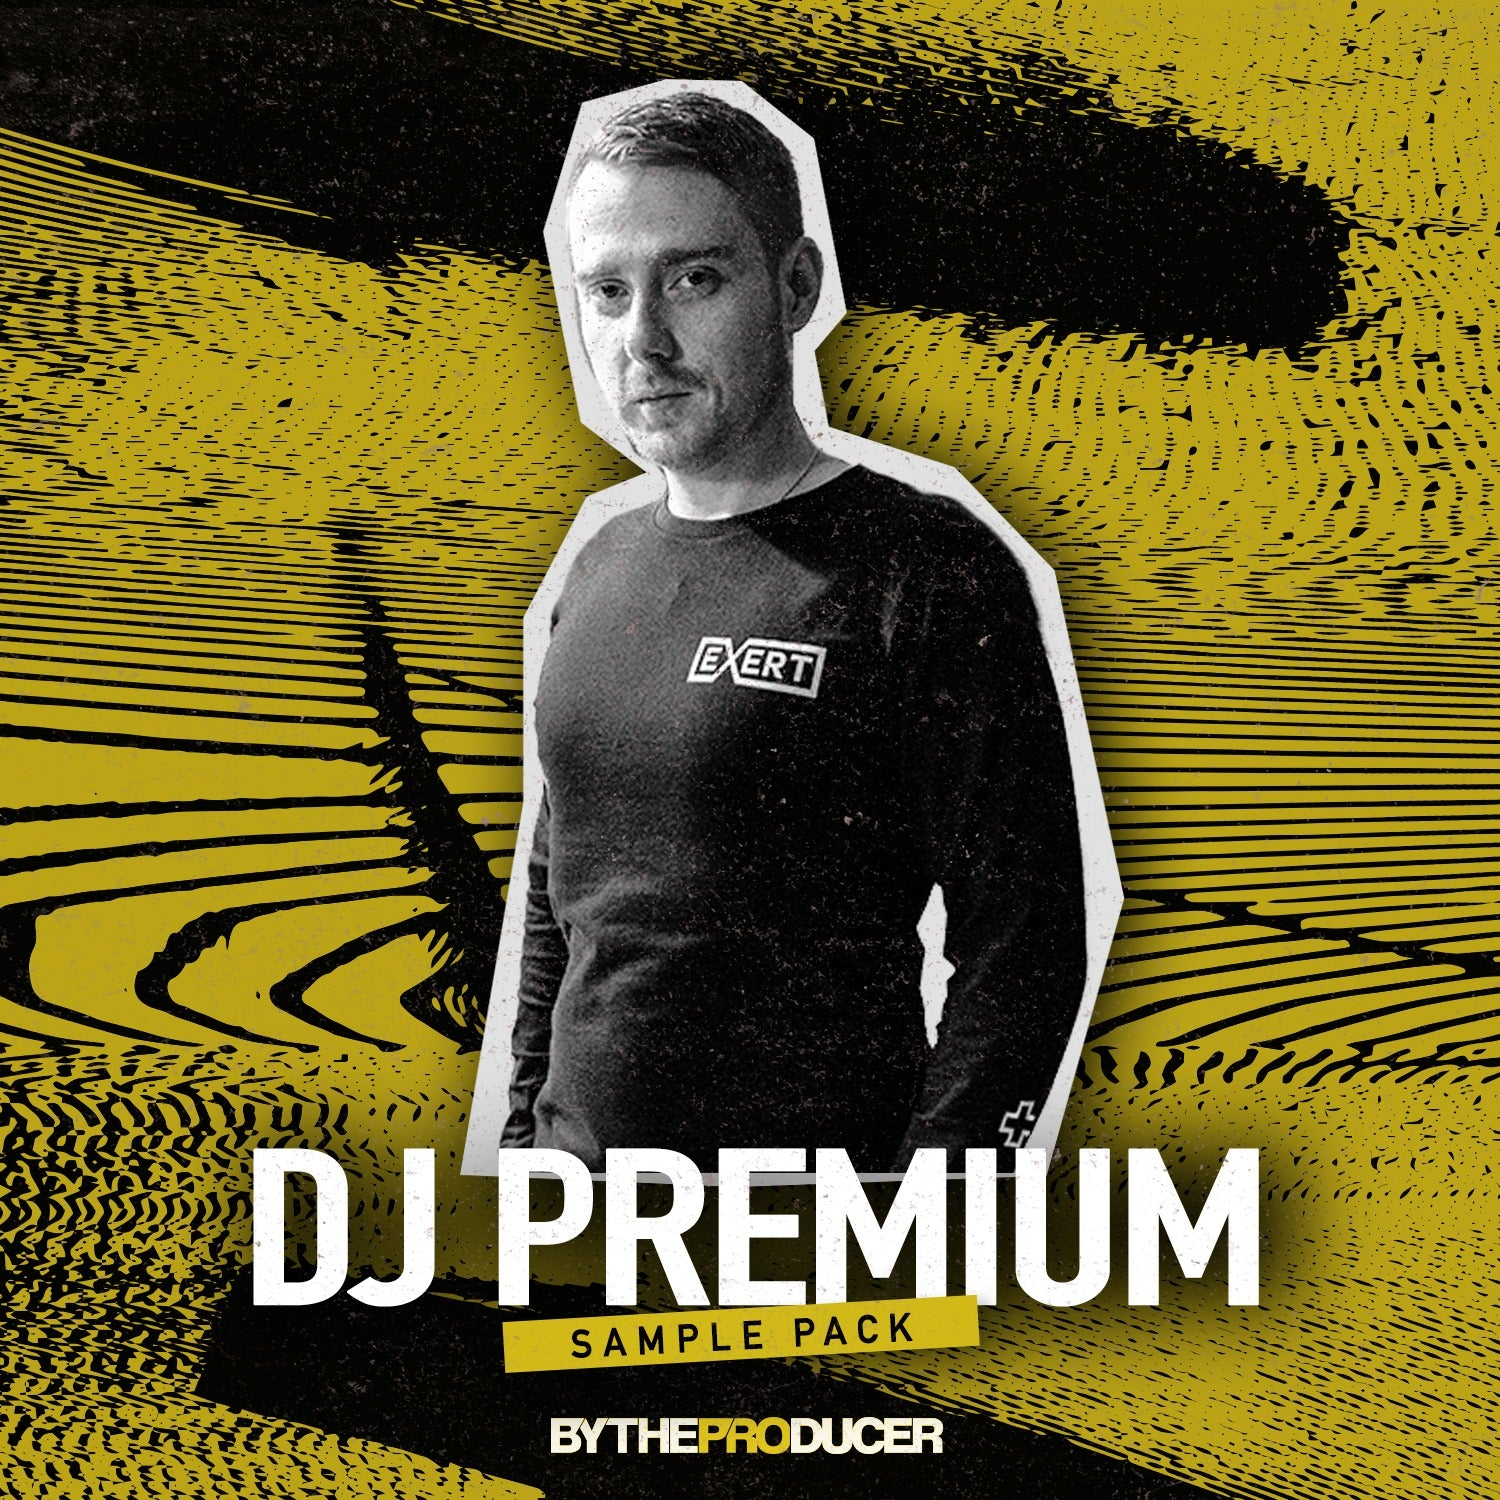 DJ Premium: Sample Pack (Official)